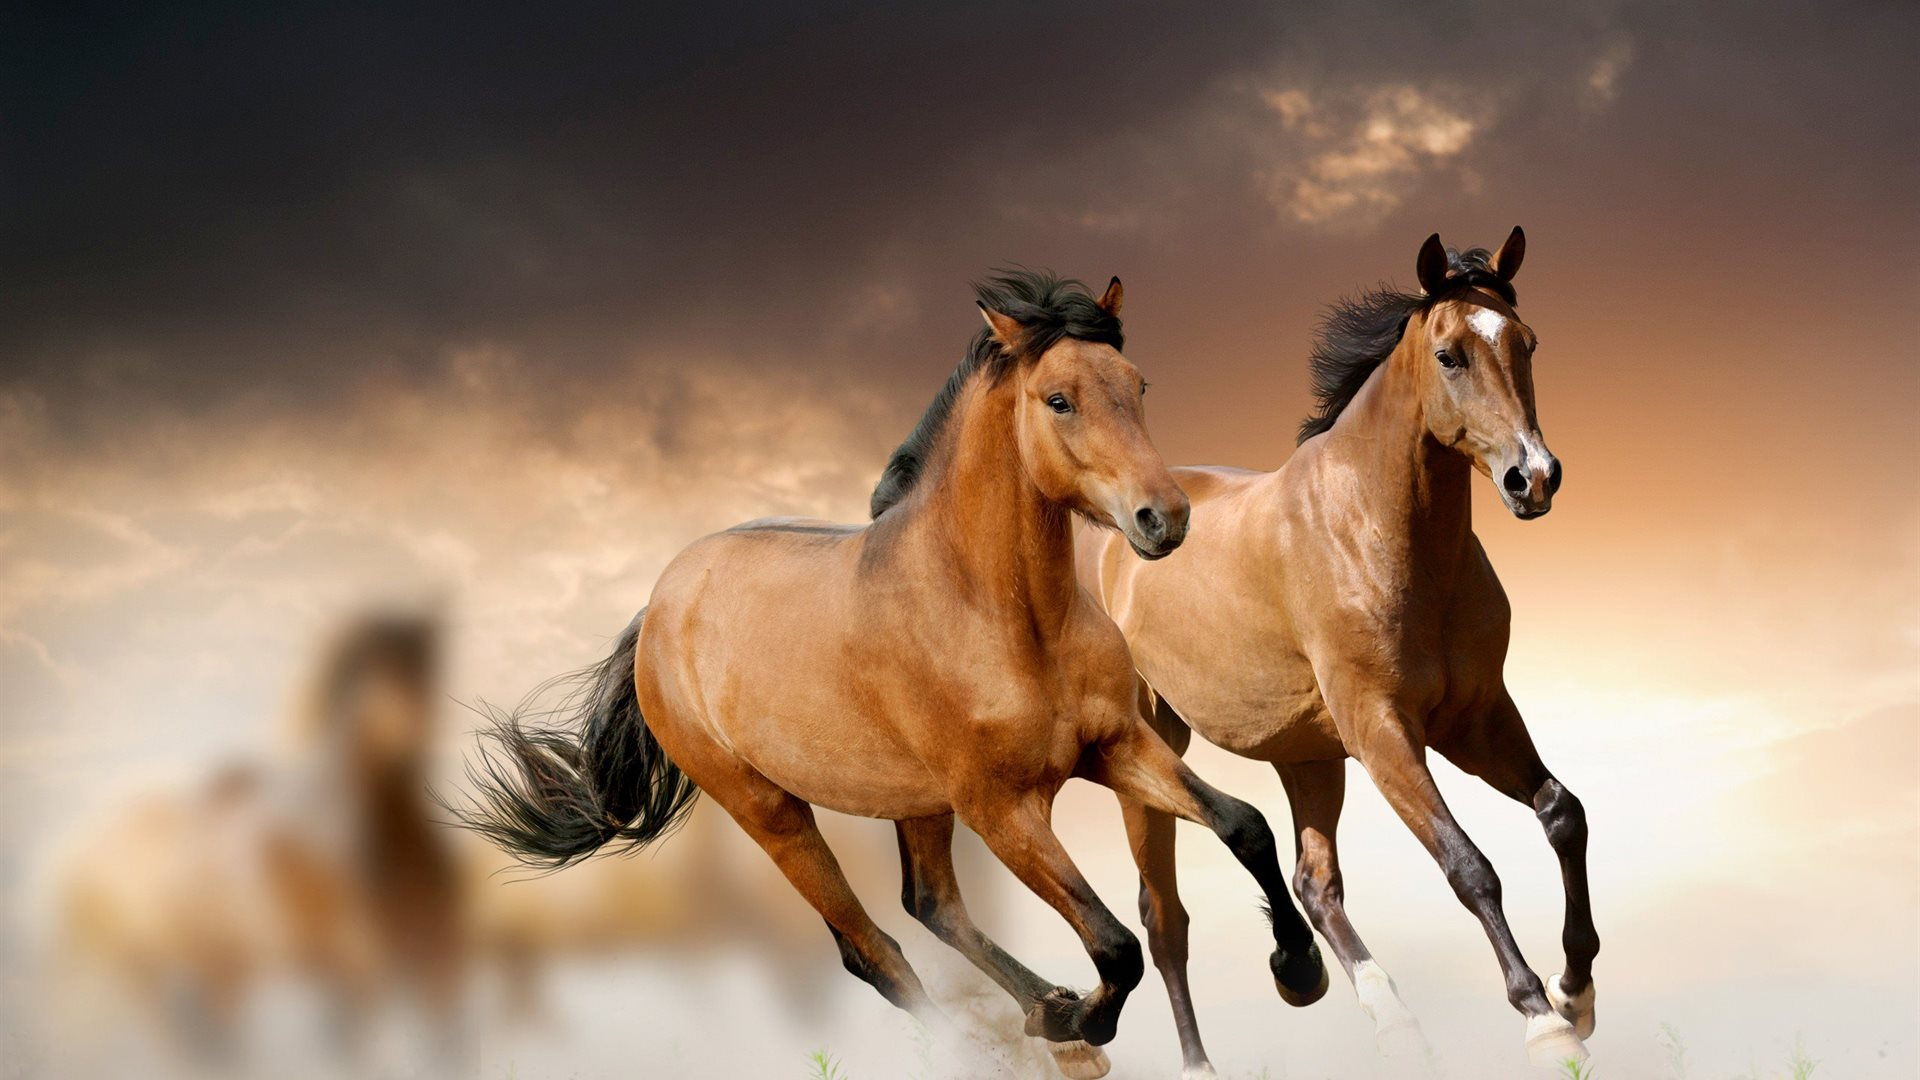 ... 1920 x 1080. 2014 horses background calendar in wallpaper collections ...